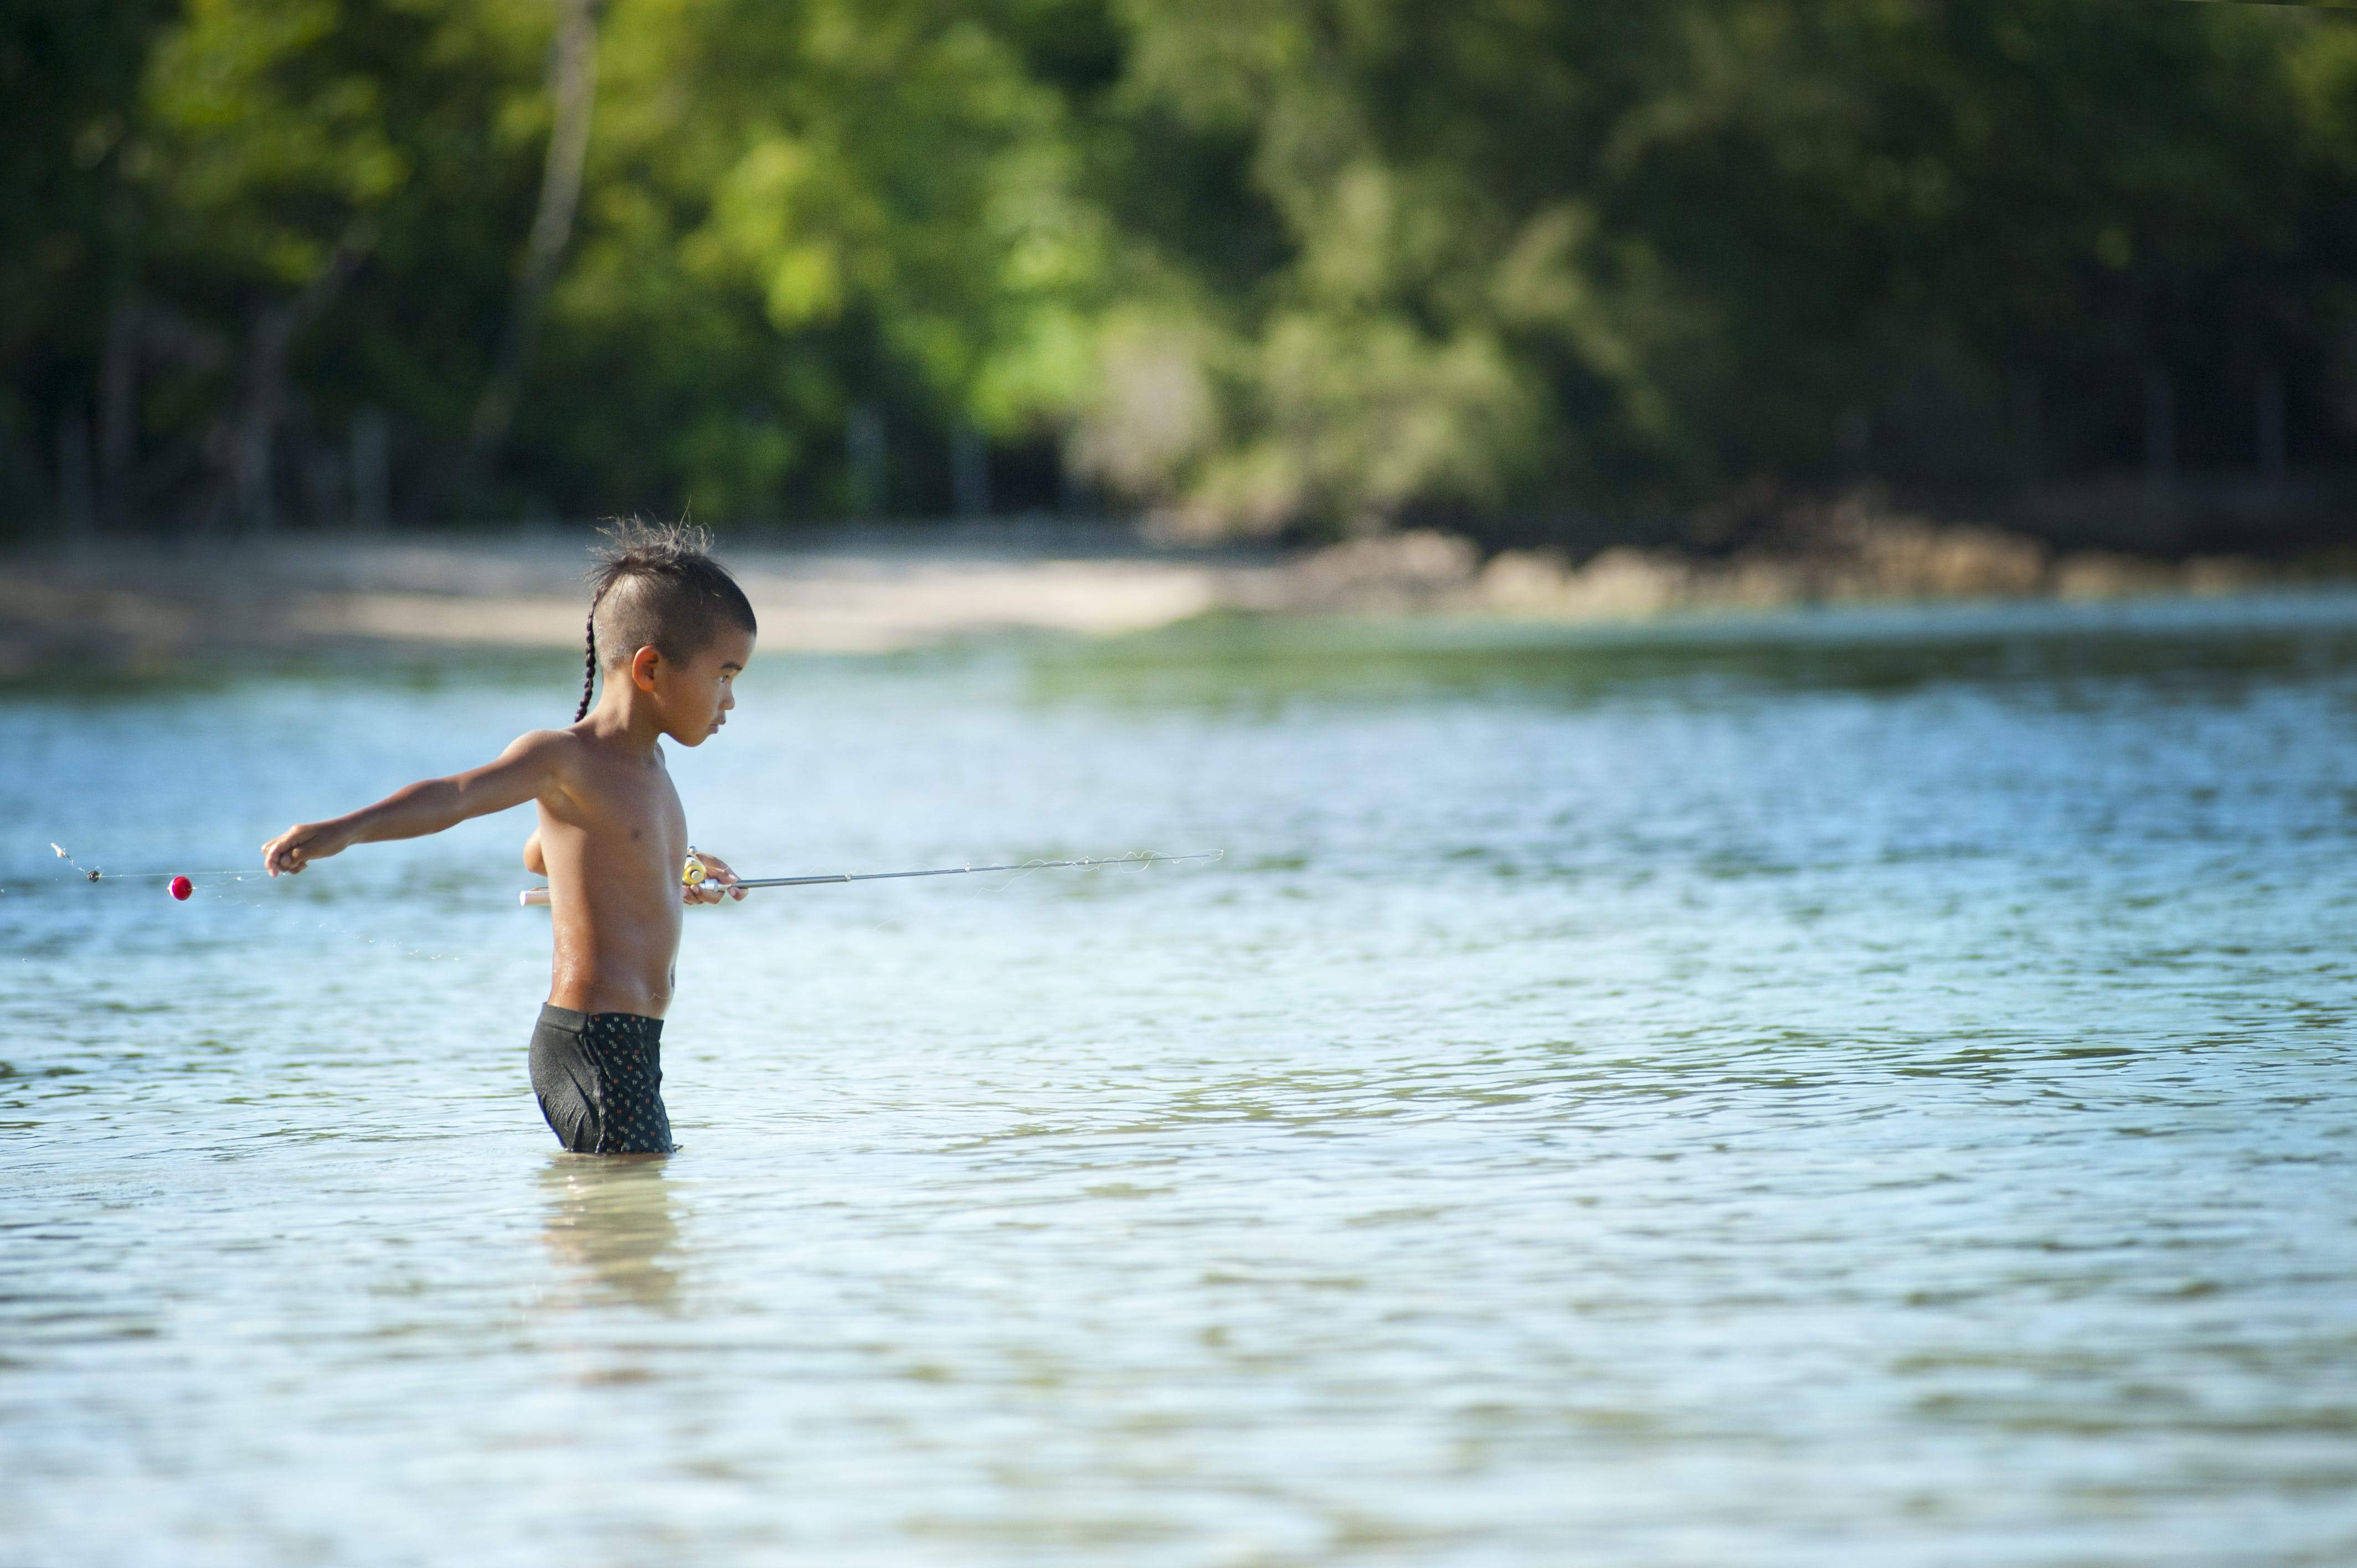 Topless Boy Wearing Black Shorts Standing on Bodies of Water